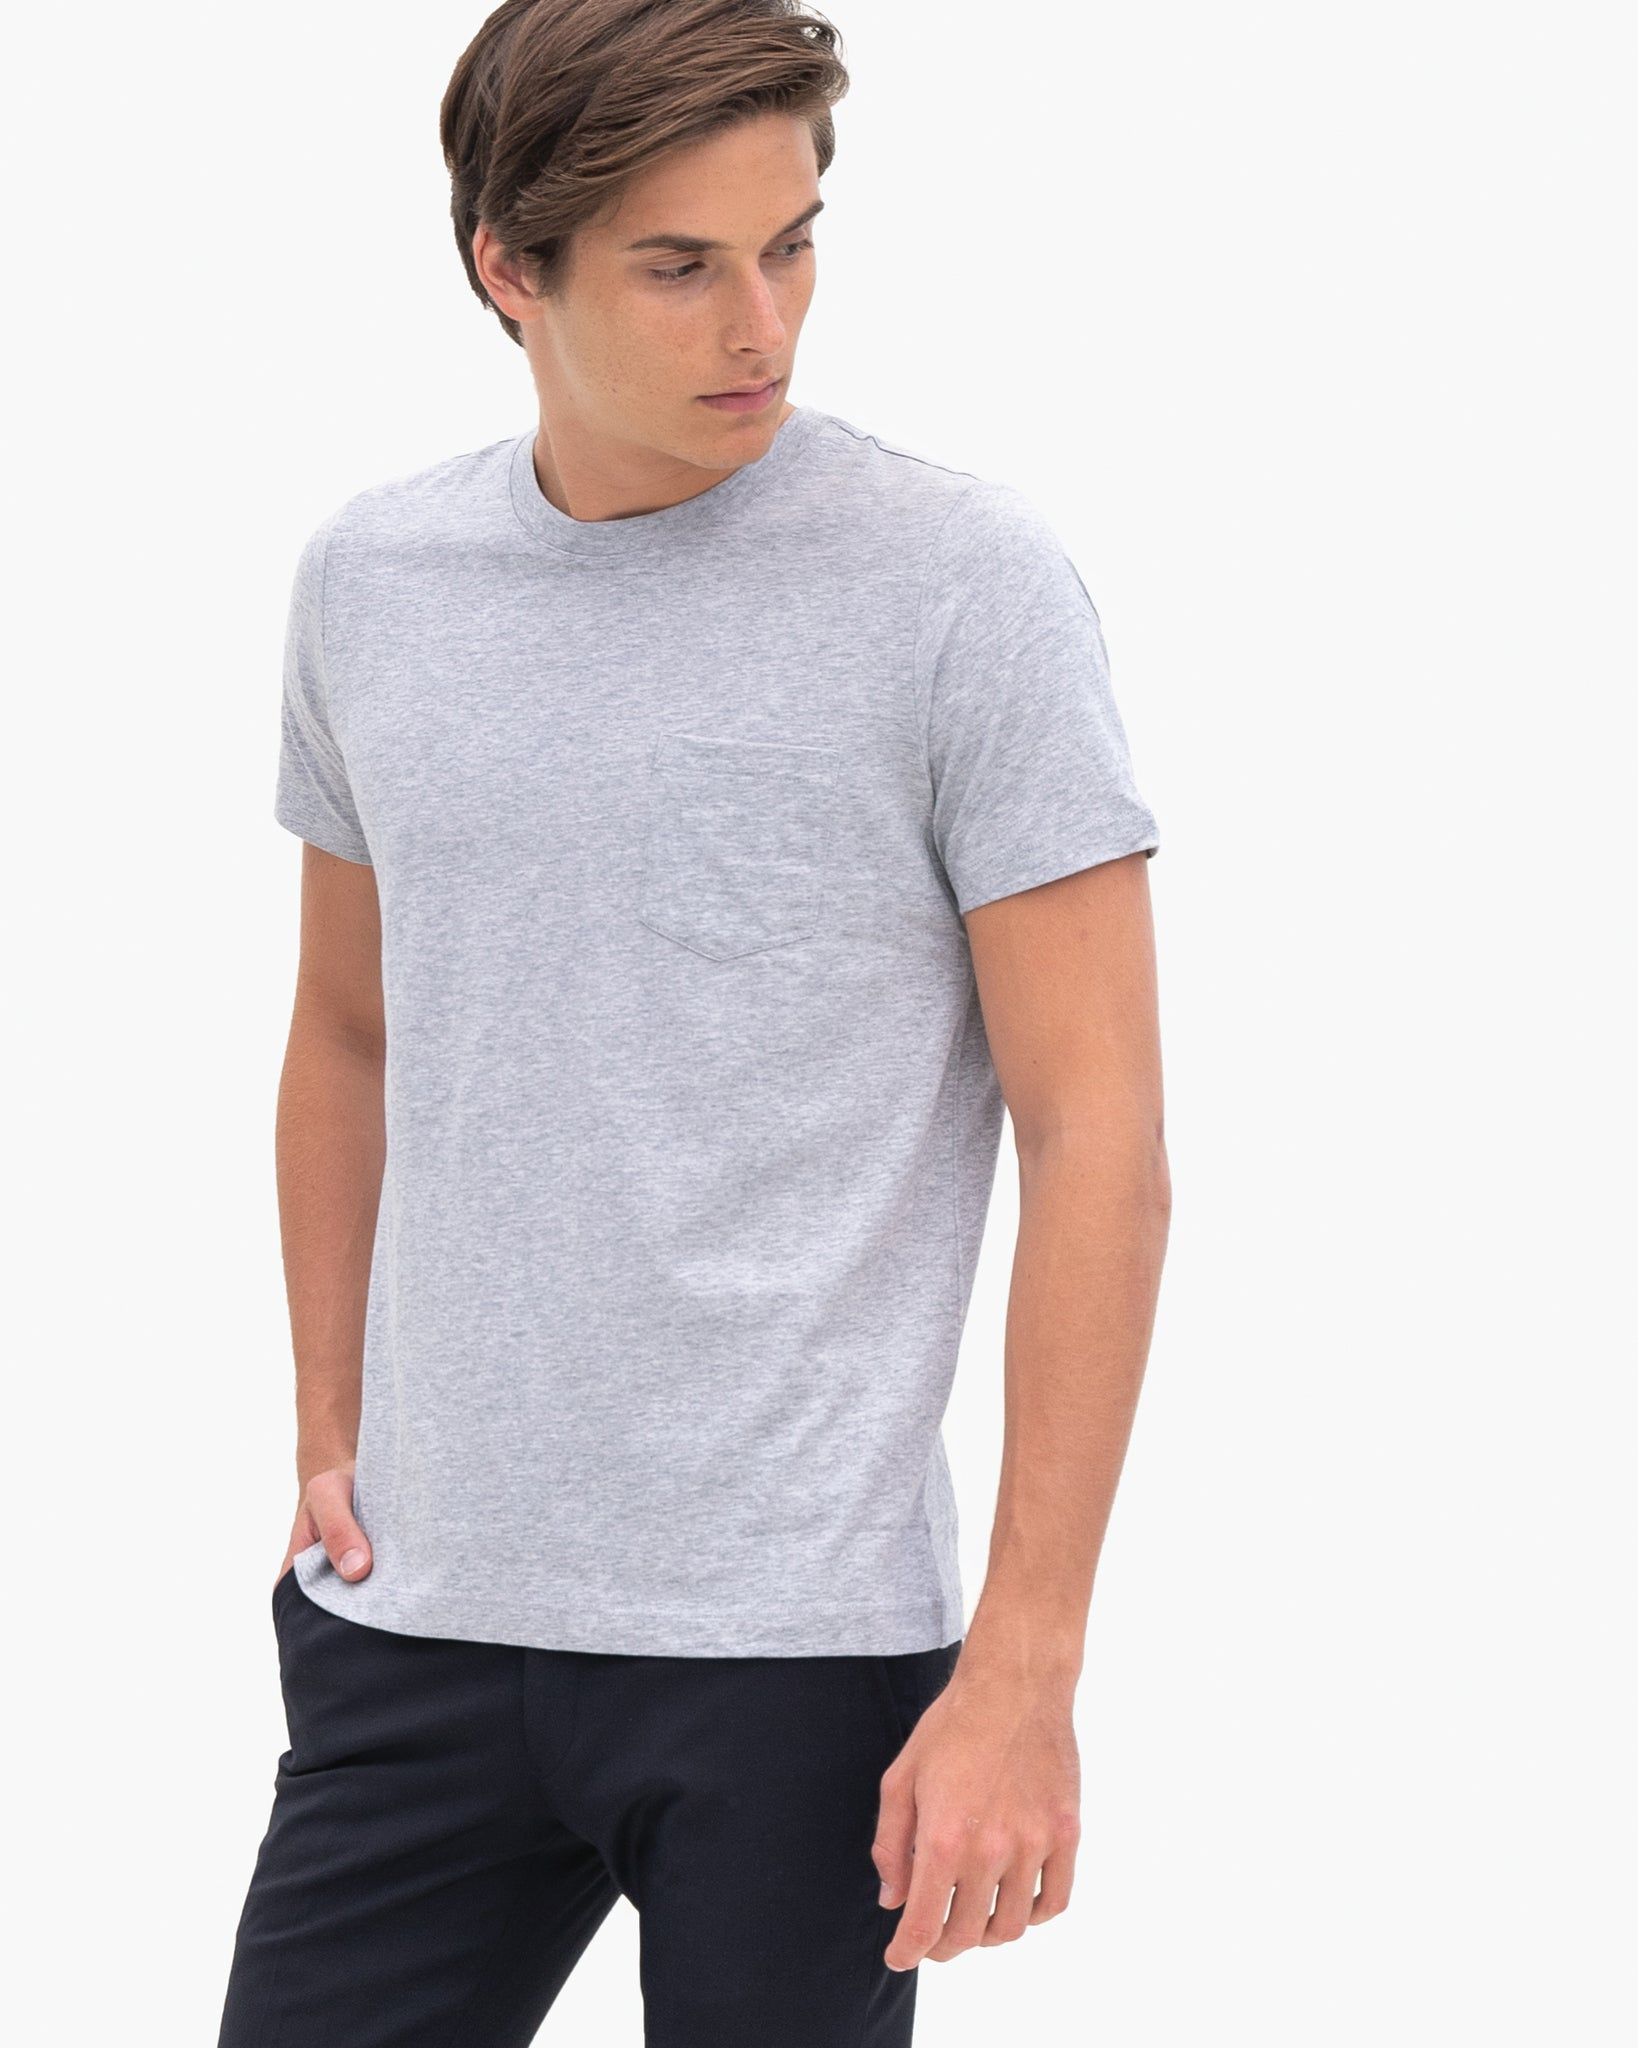 Men Organic Cotton Crew Neck with Pocket Grey Featured